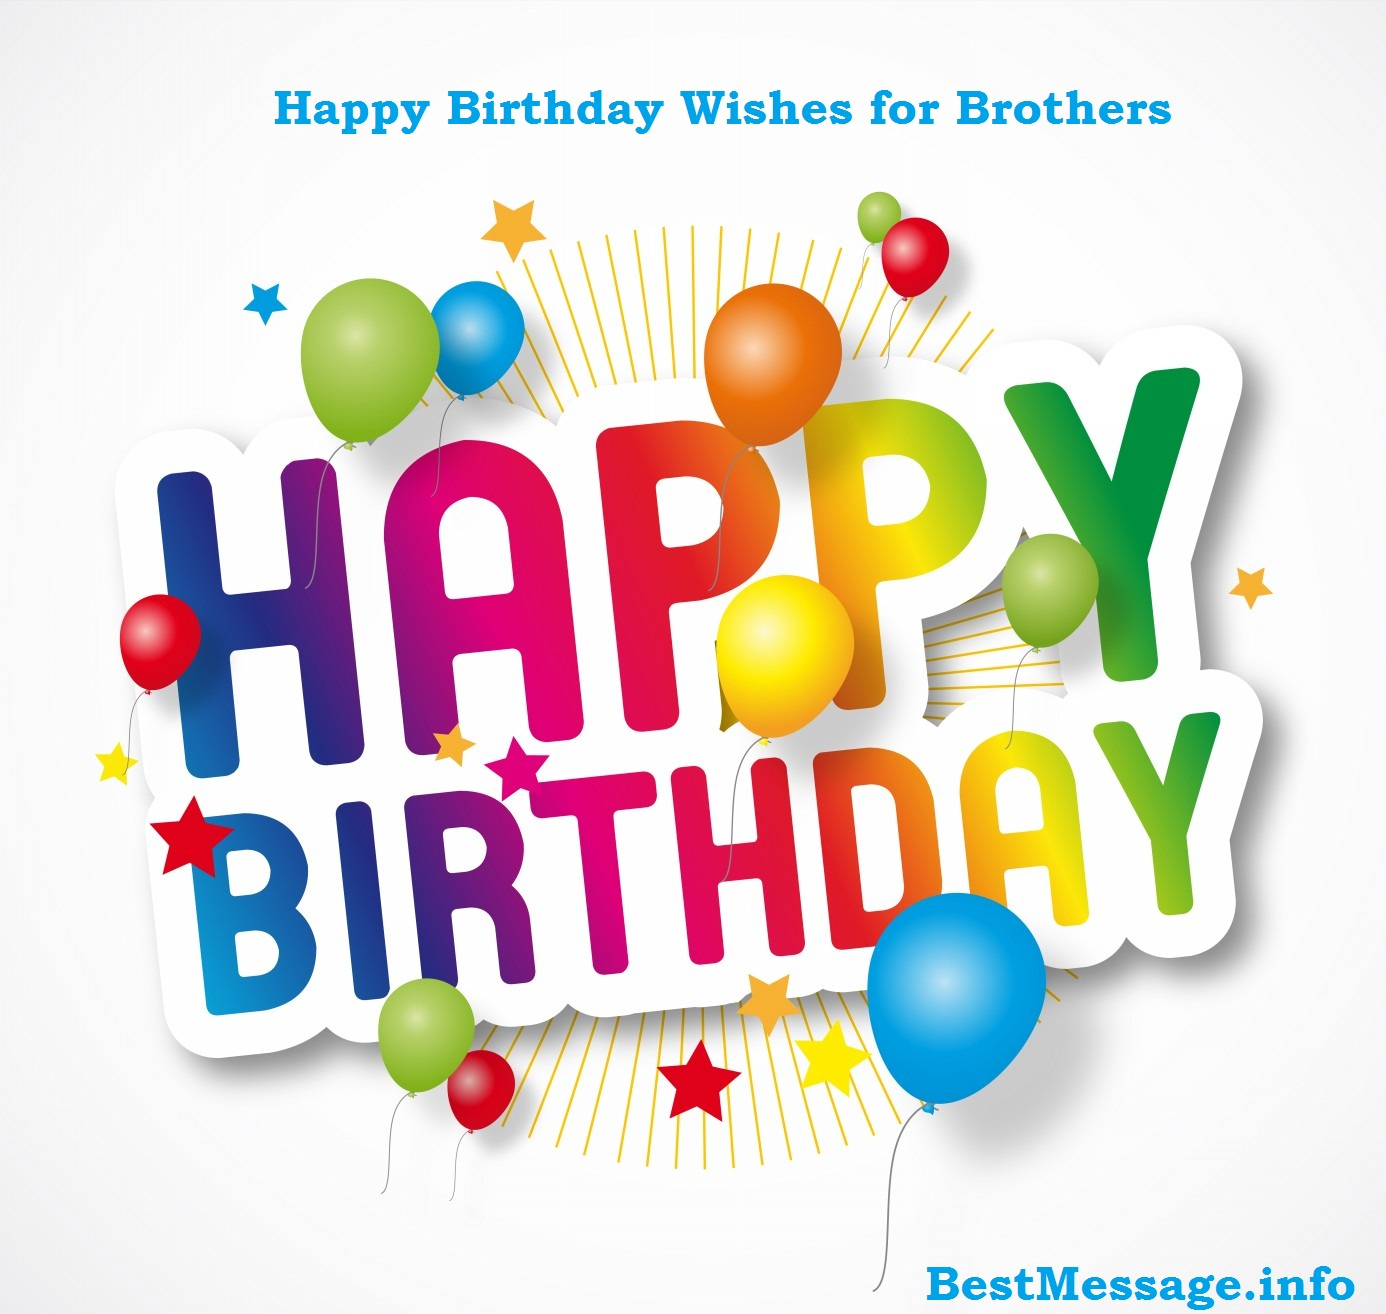 Happy birthday wishes to brother bestmessage happy birthday wishes to brother kristyandbryce Image collections